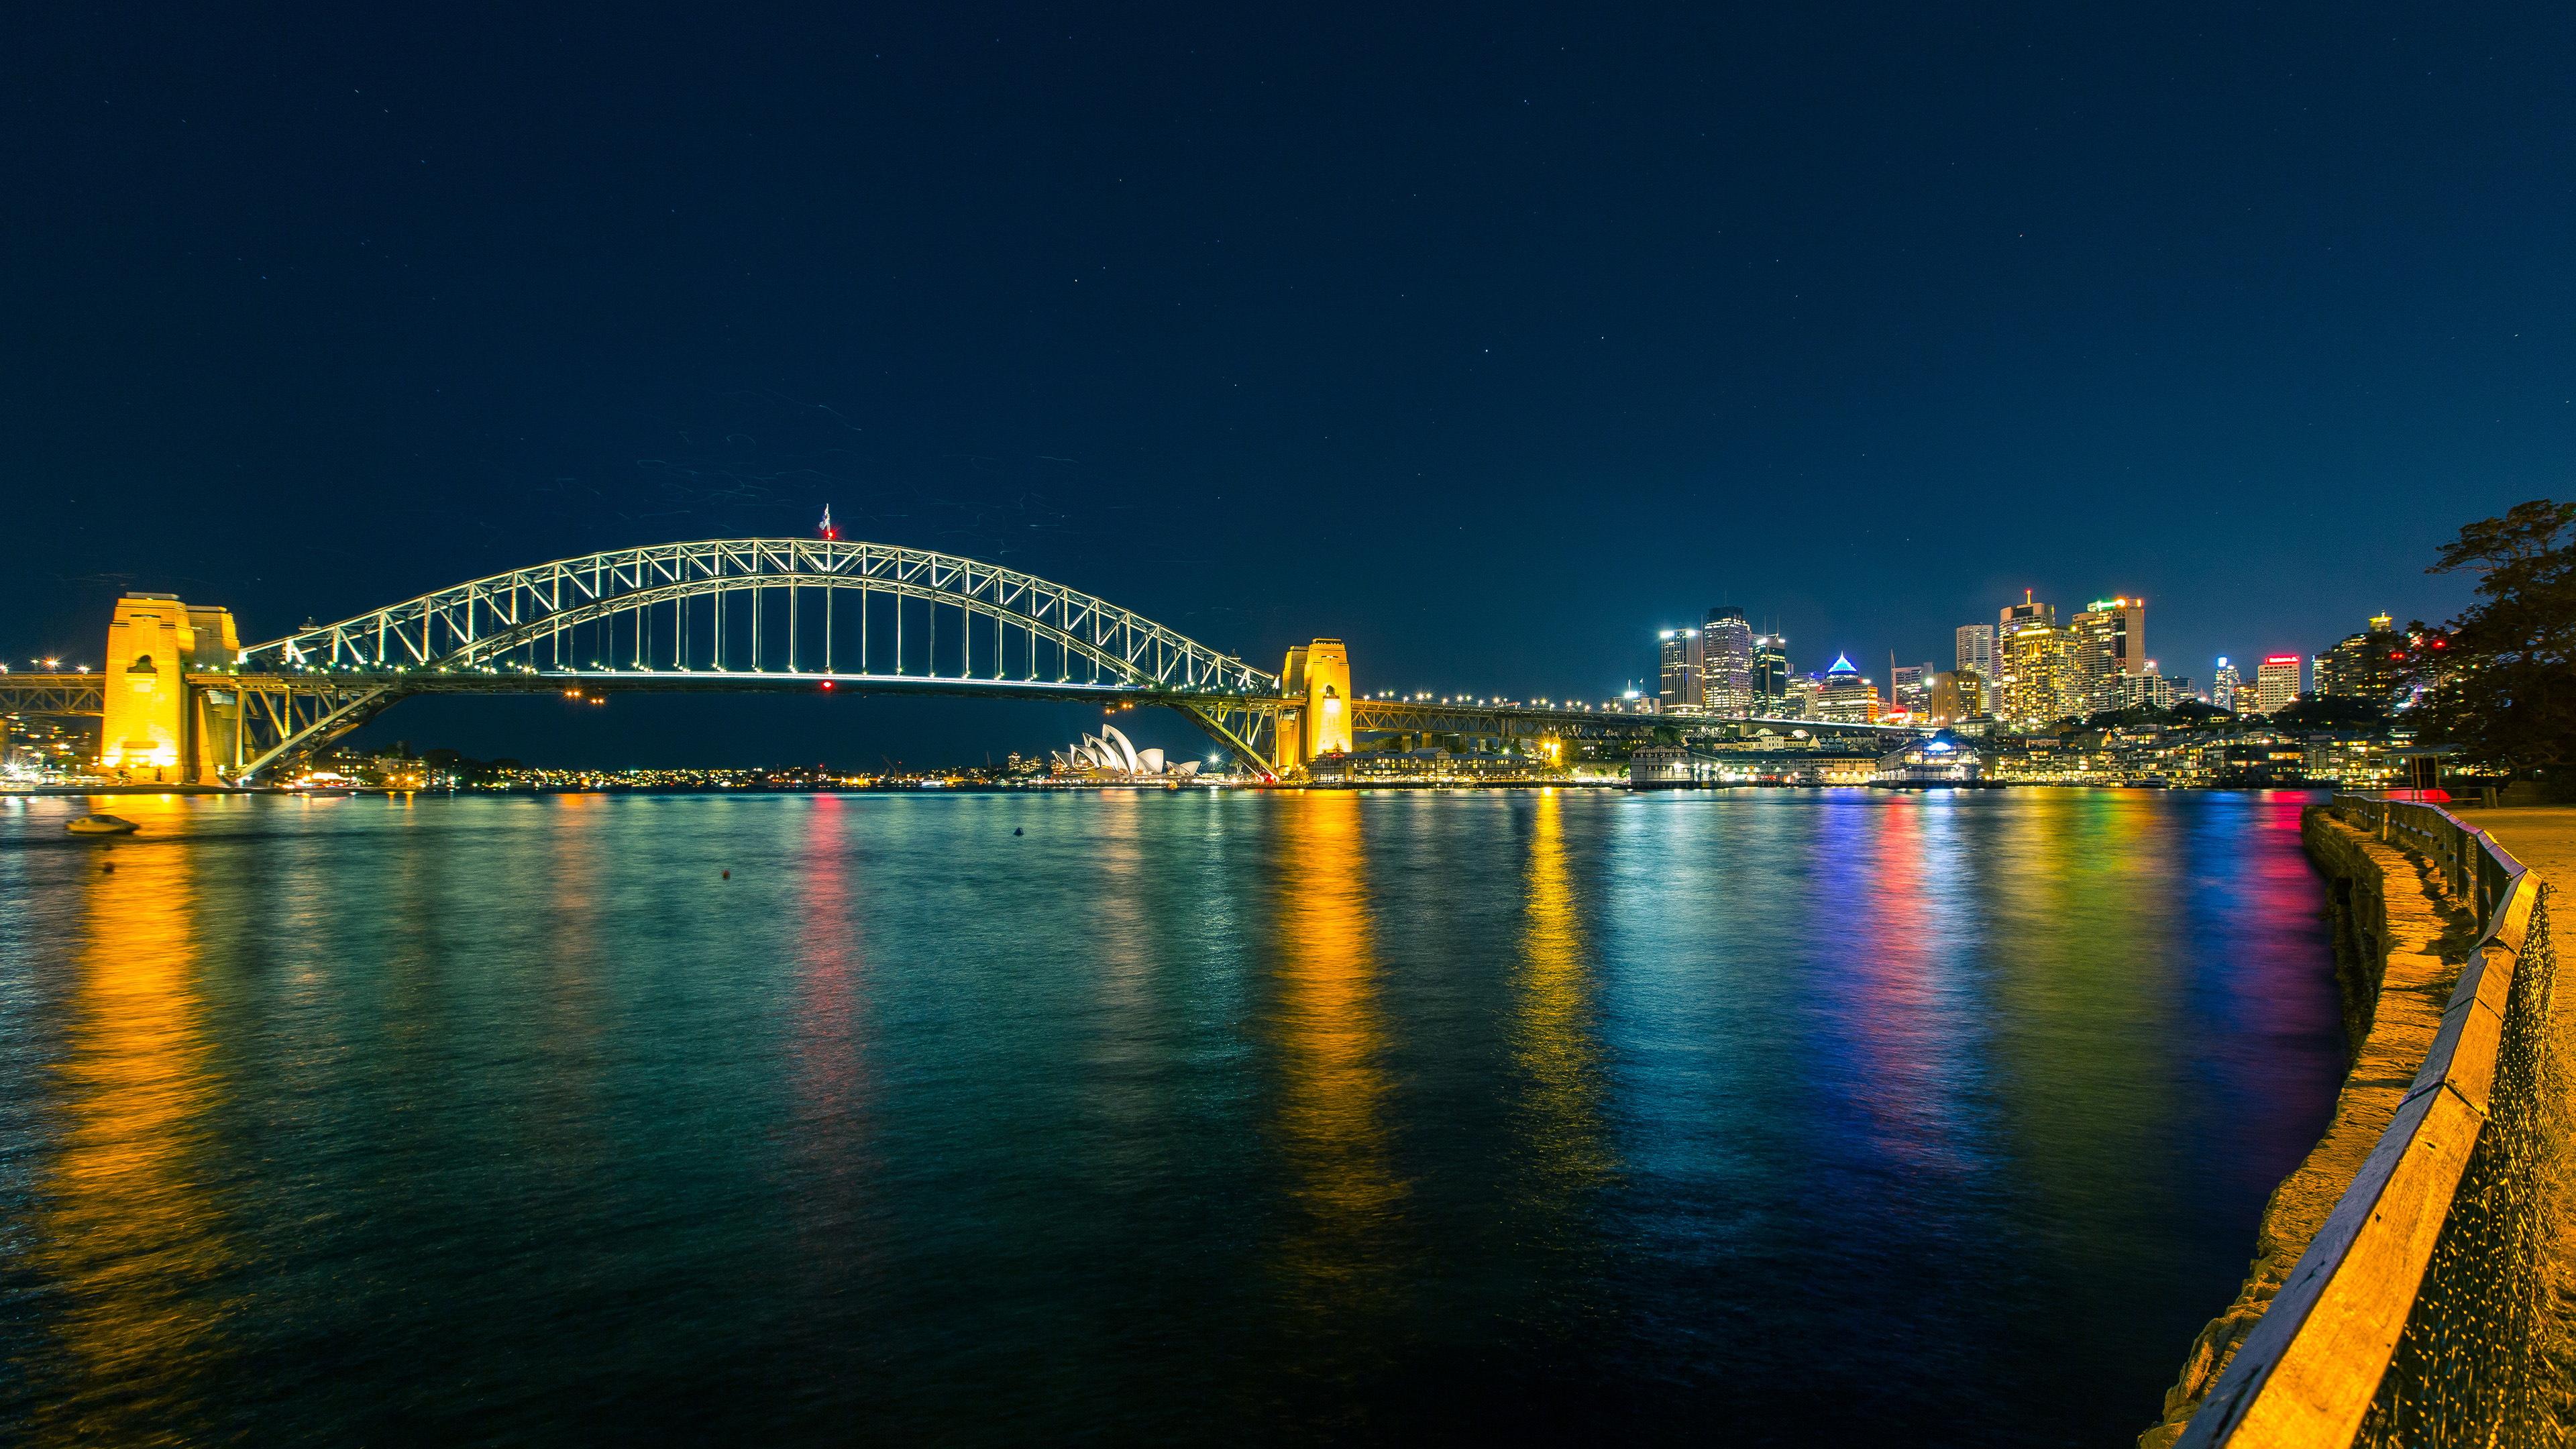 Man Made  Sydney Harbour Bridge Wallpaper